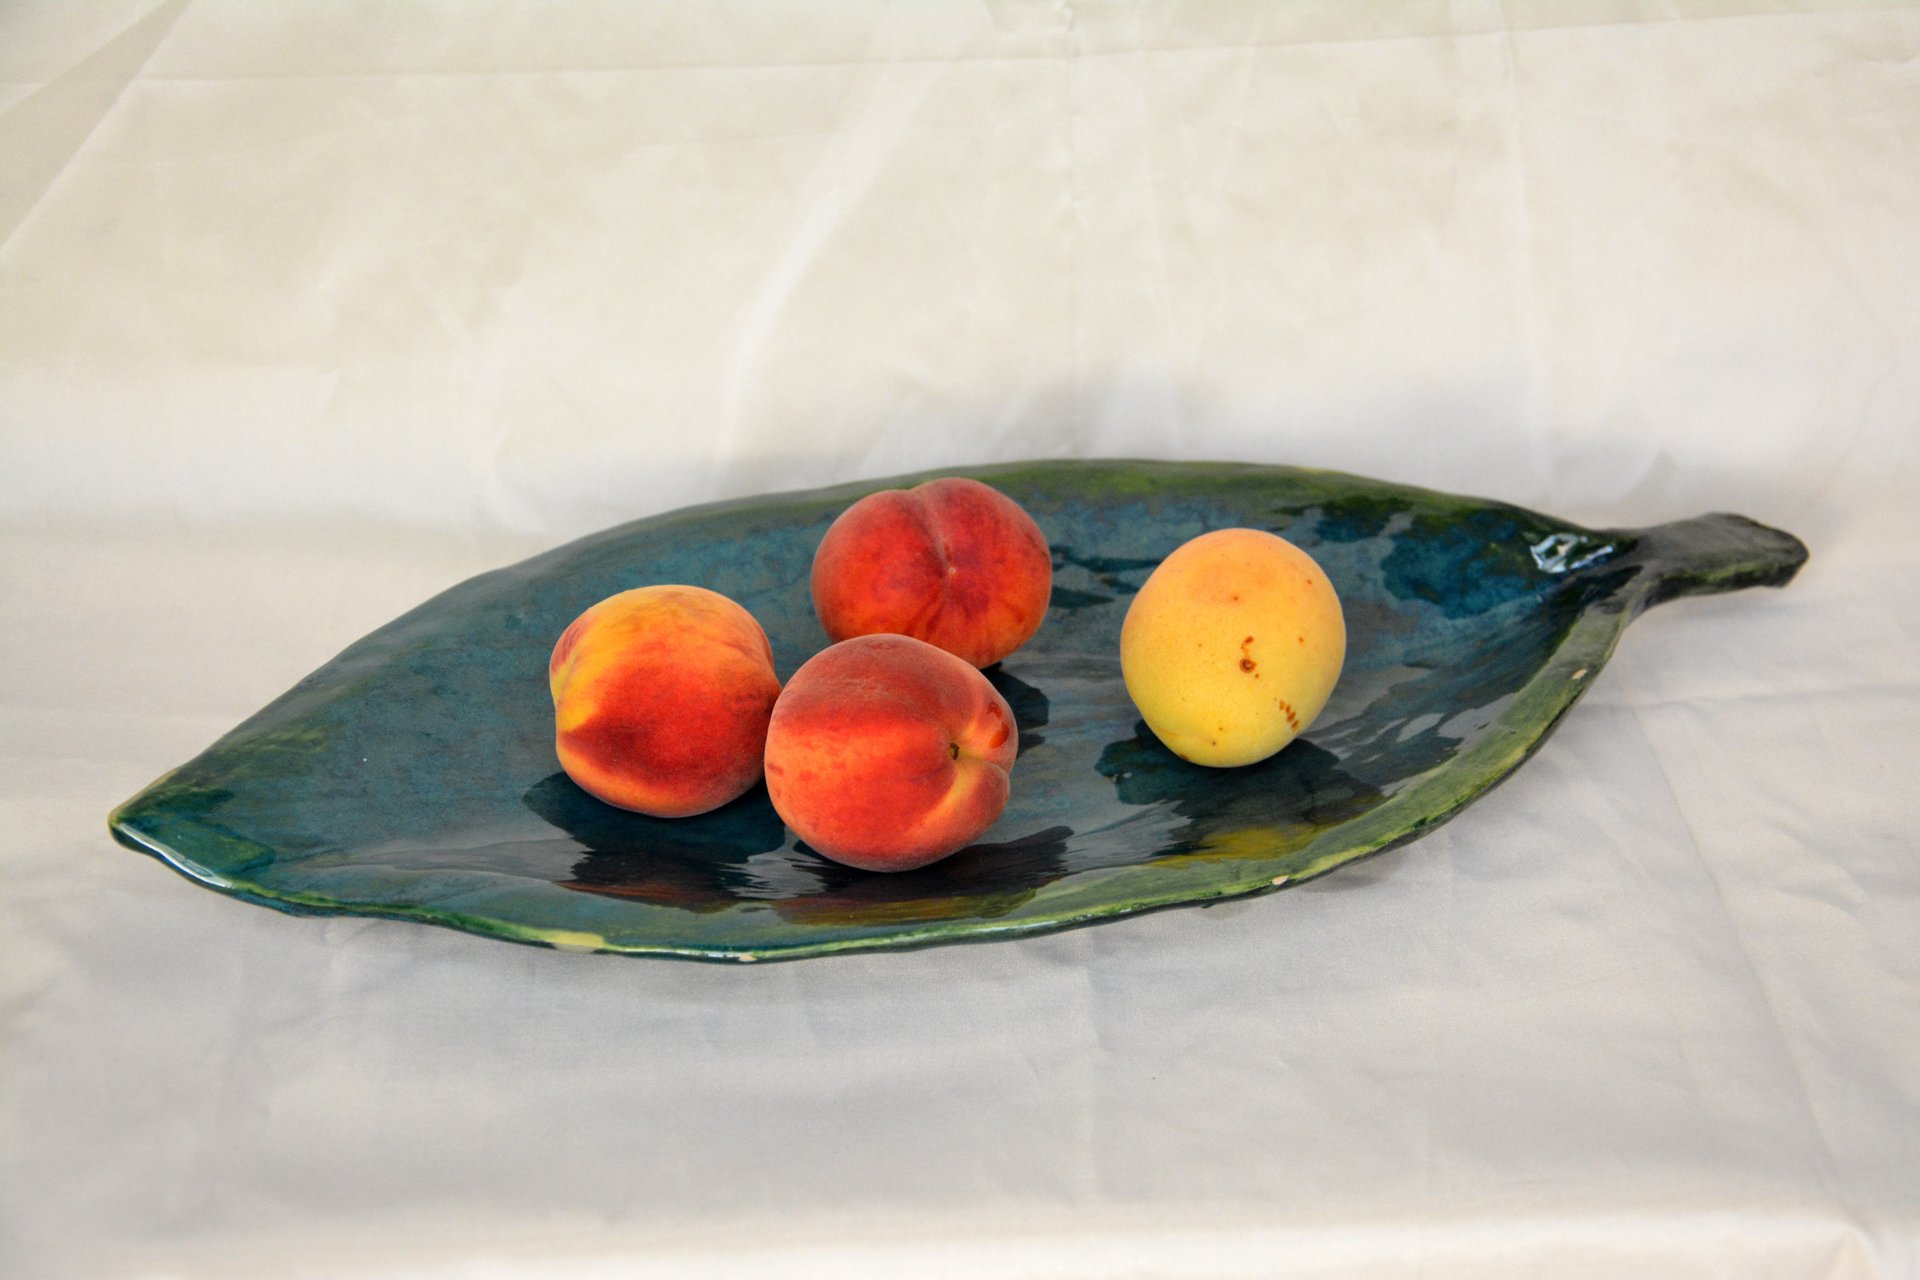 Fruit dish Leaf - Ceramic dishes, 46 * 23 cm, photo 1 of 3.